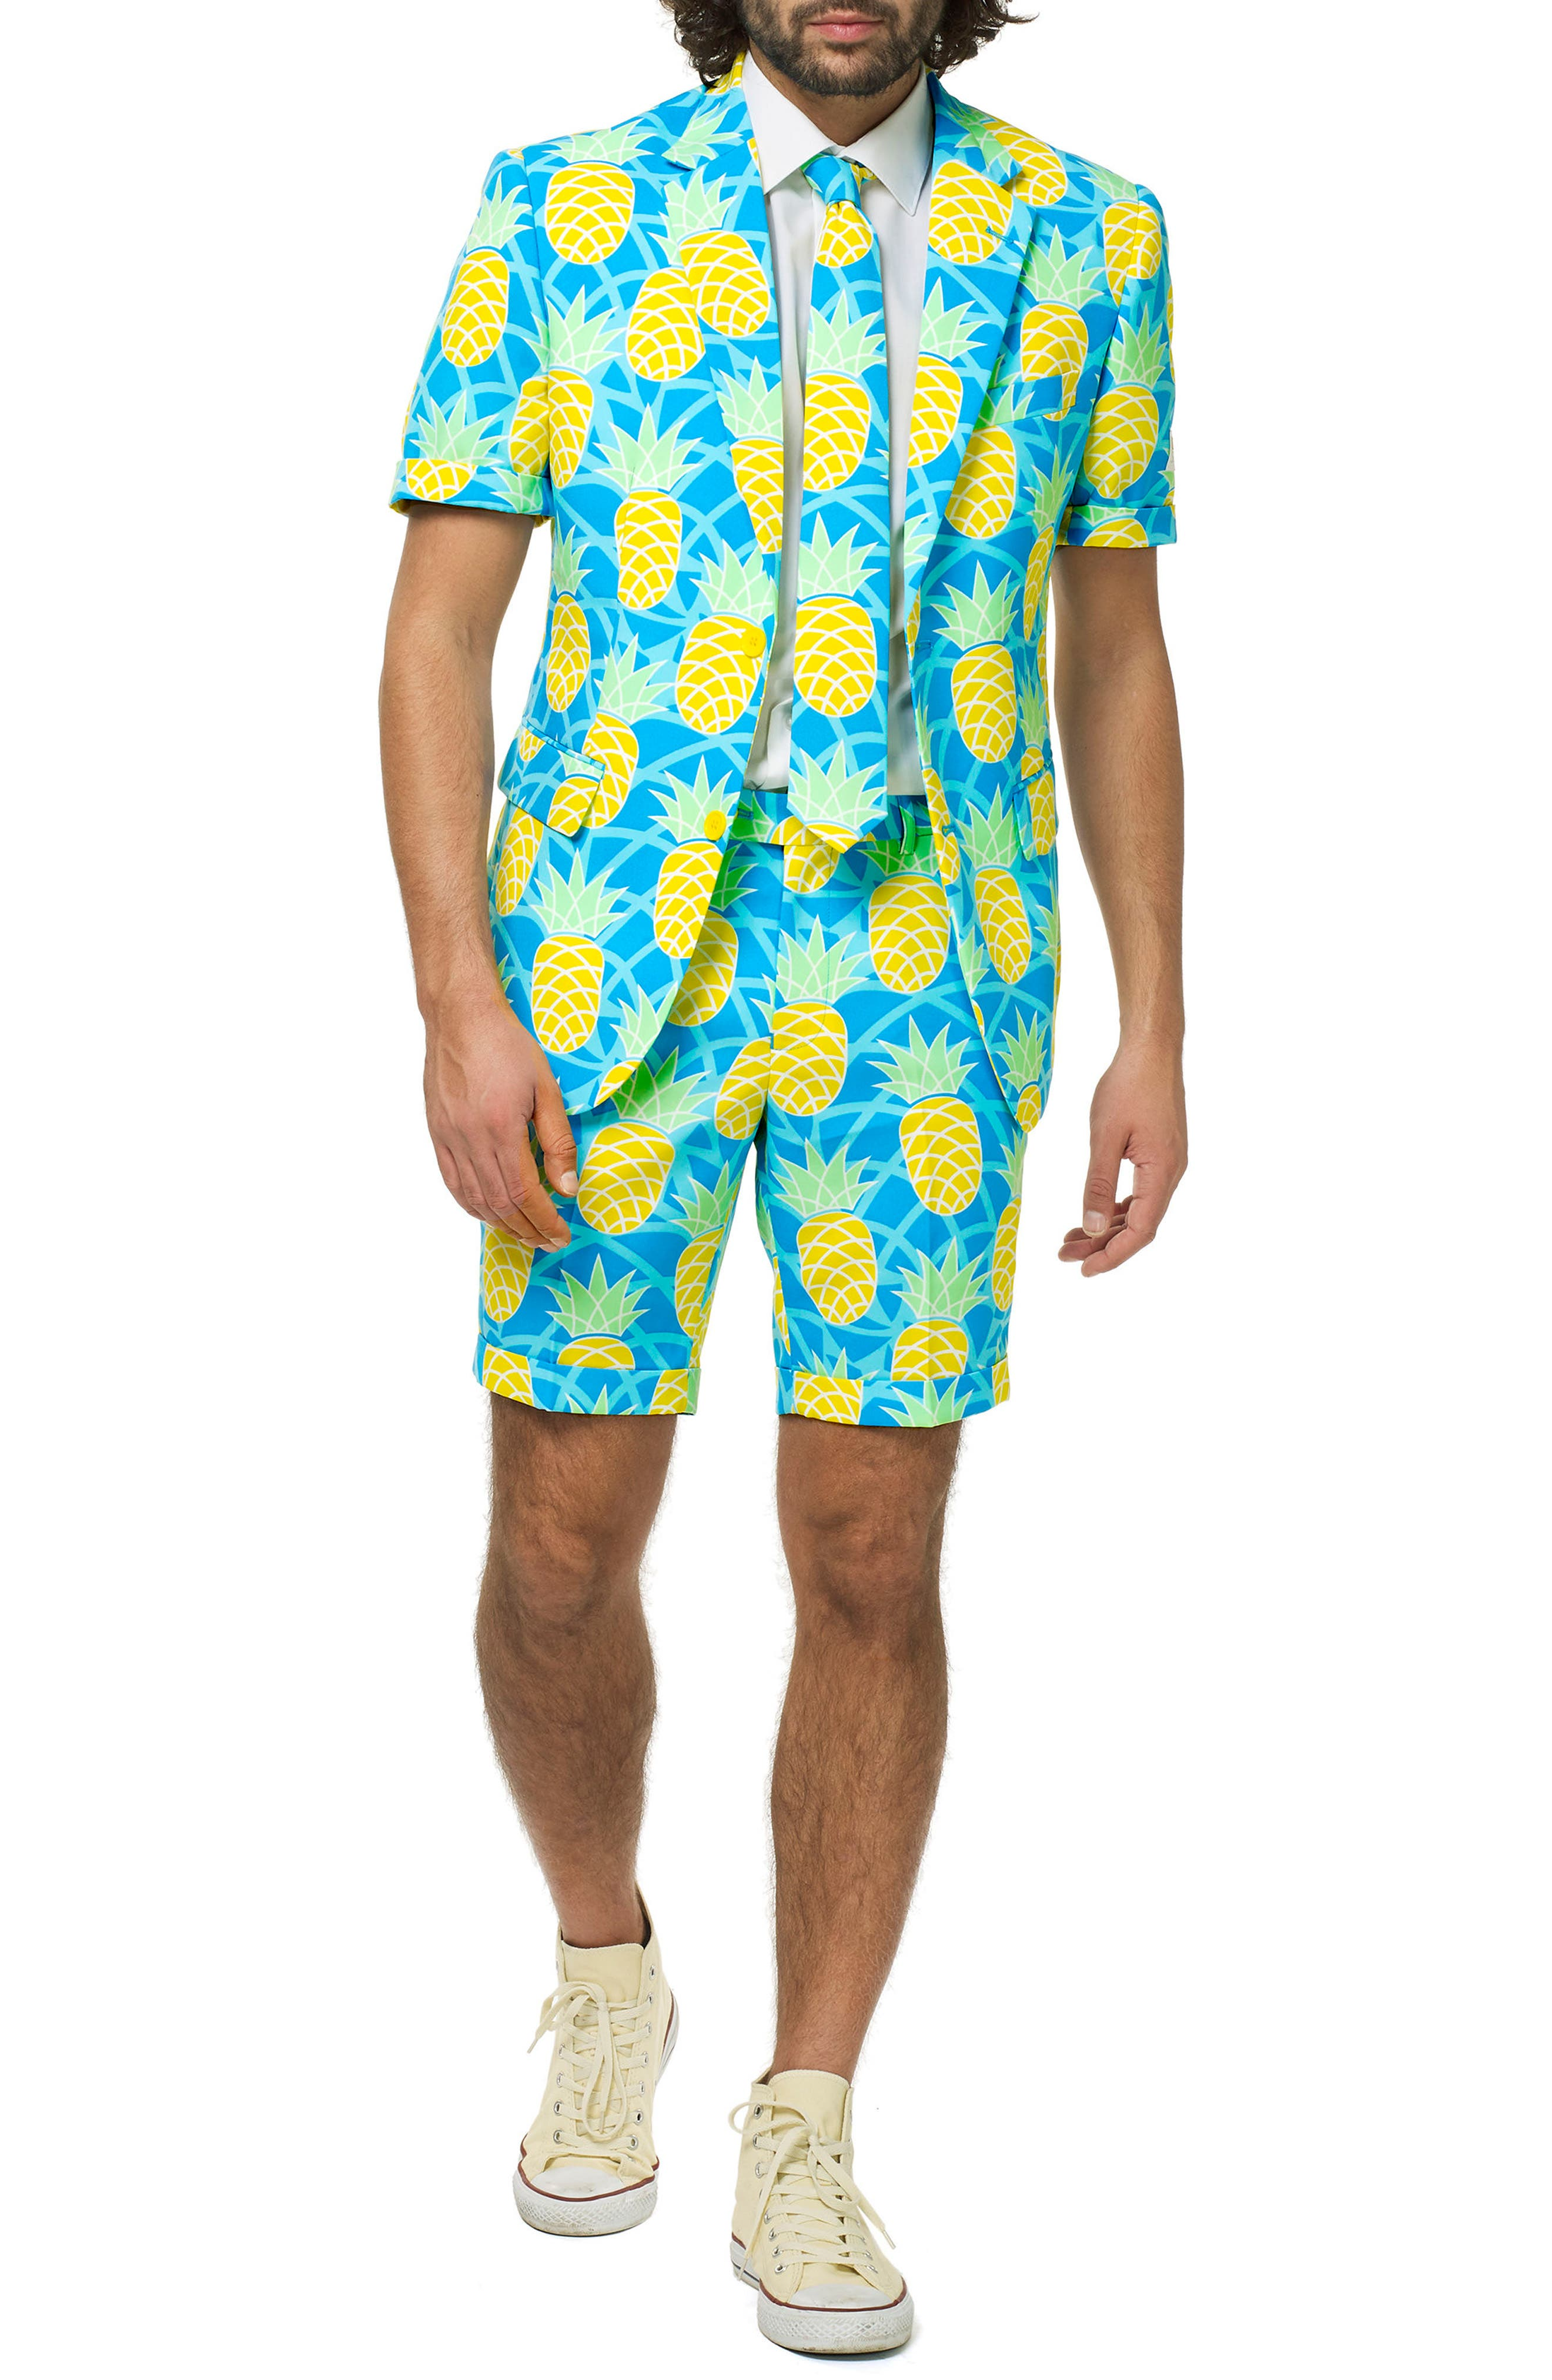 OppoSuits Shineapple Trim Fit Two-Piece Short Suit with Tie